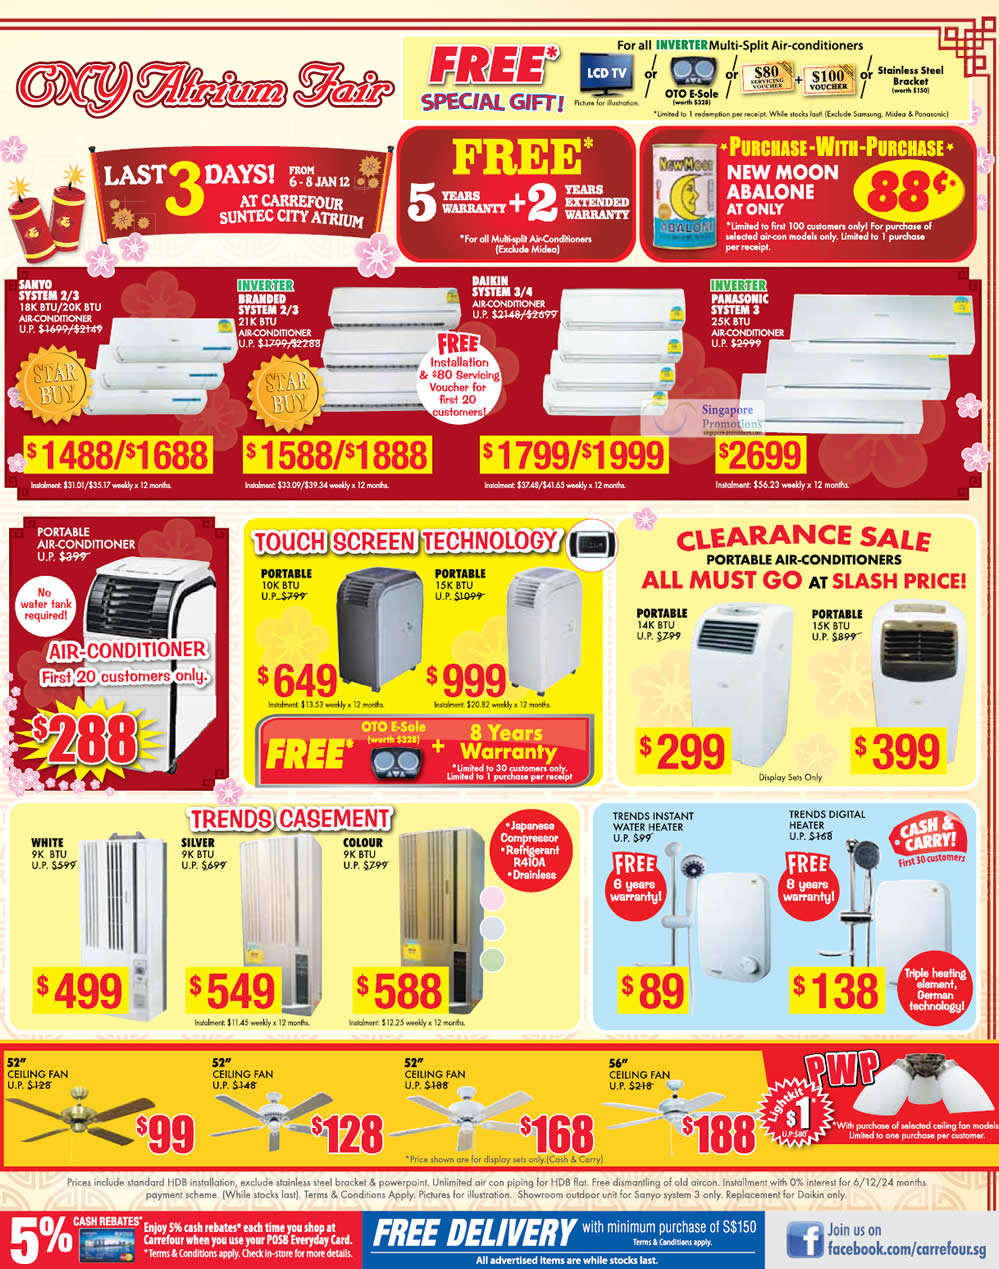 Water Heaters, Ceiling Fans & Air Conditioners